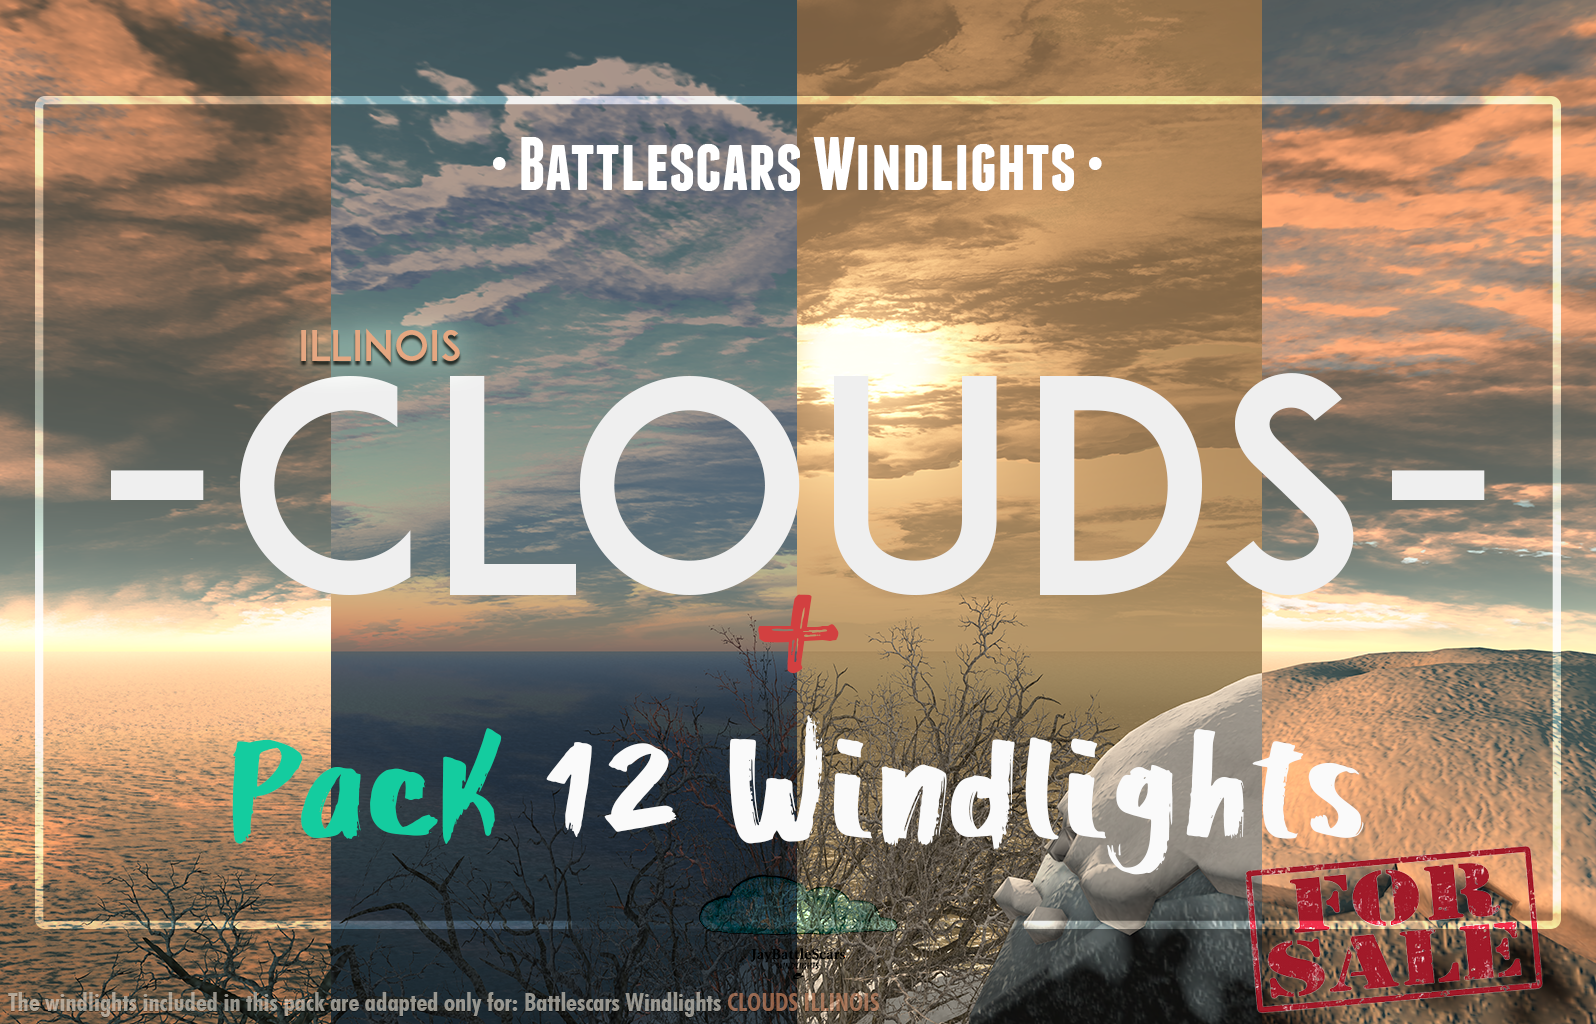 NEW RELEASE: BattleScars Windlights - CLOUDS - ILLINOIS 1.0 (PREMIUM)